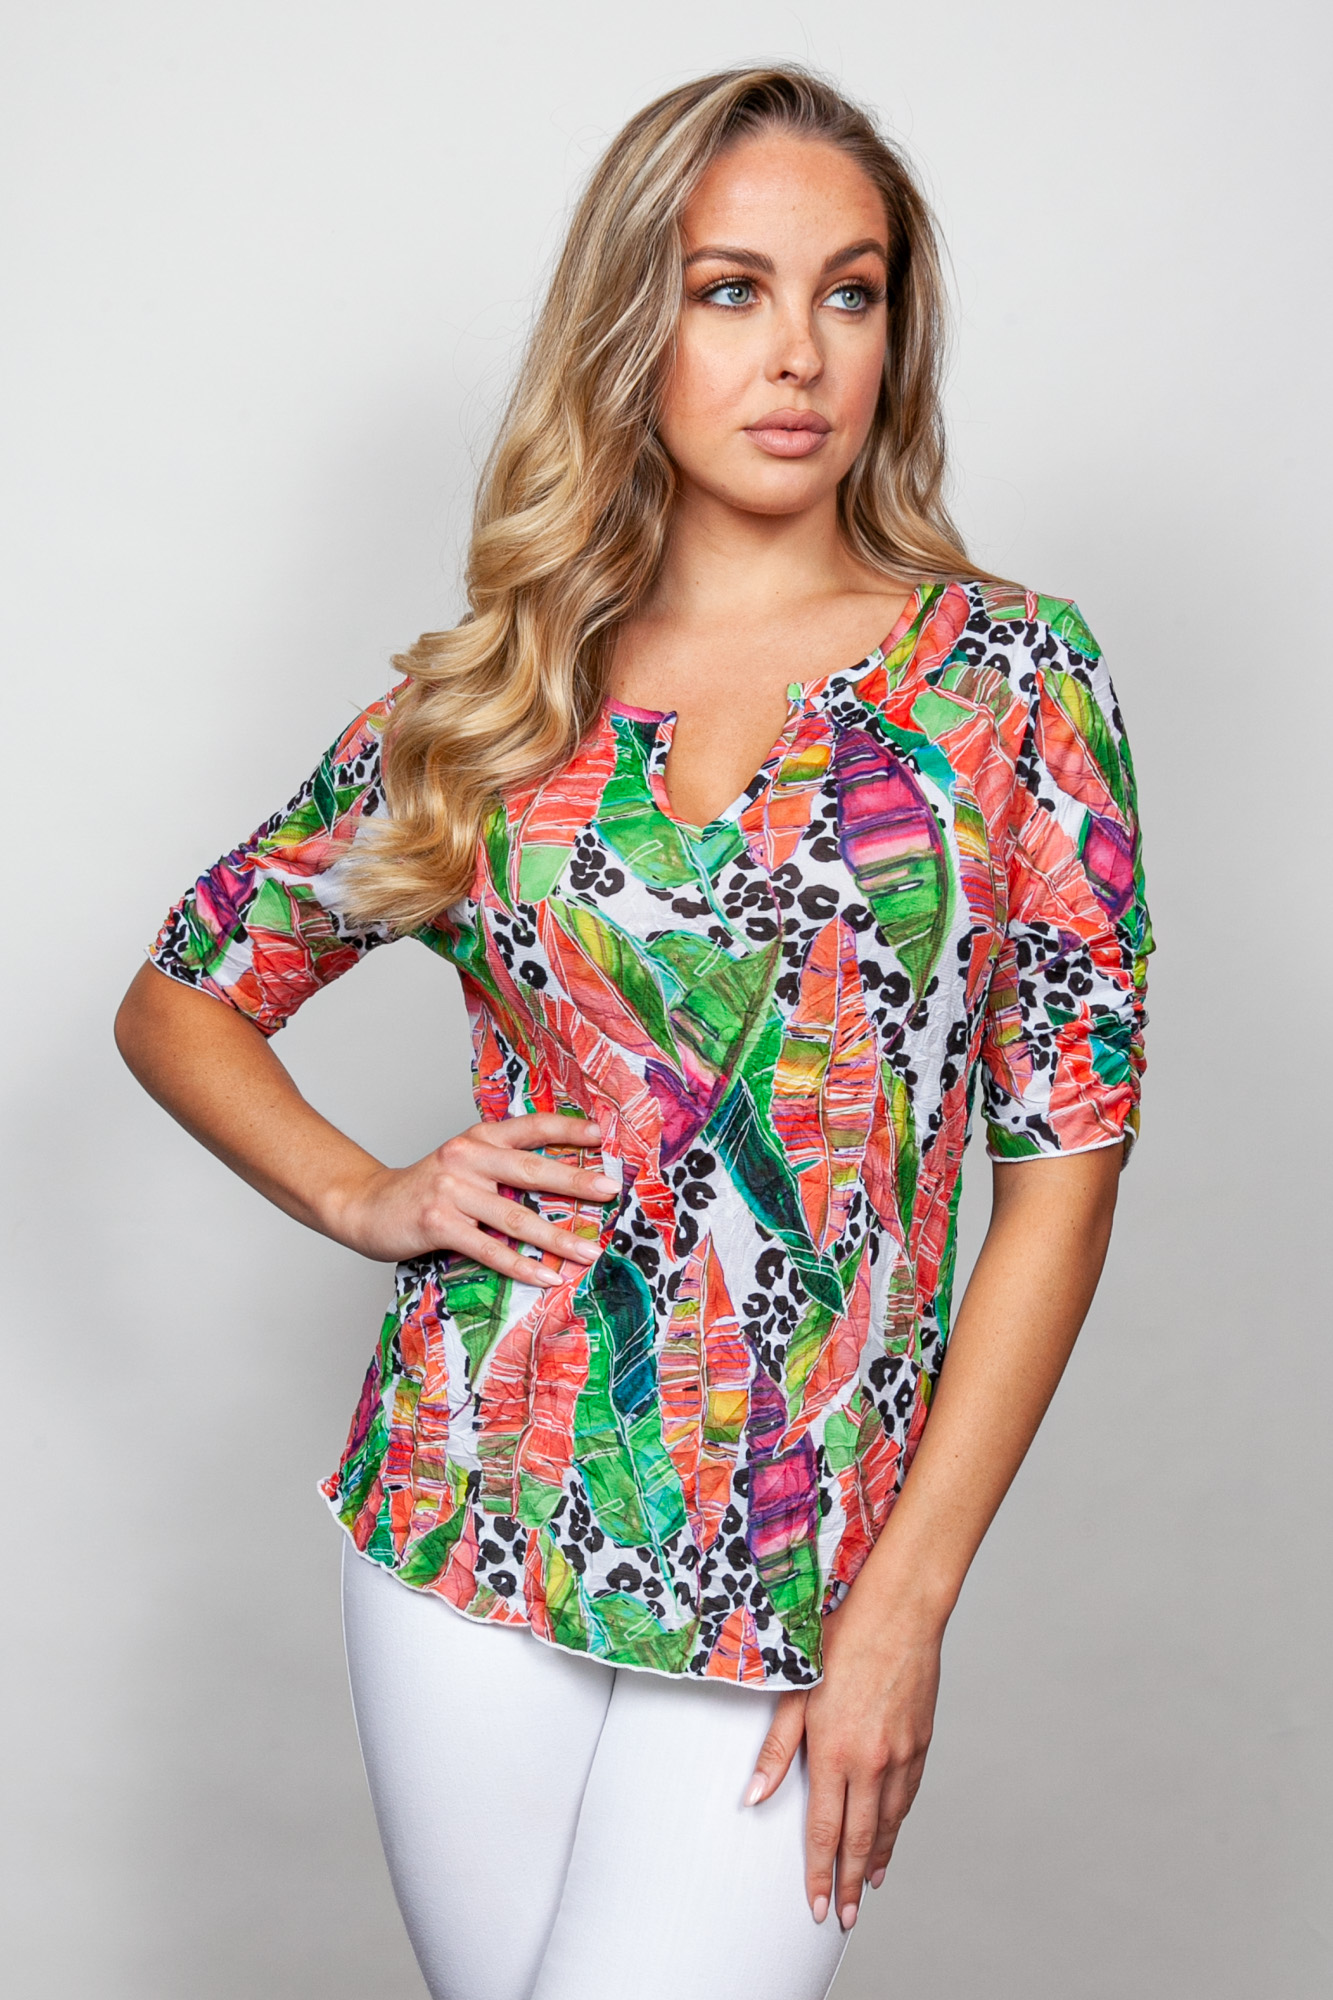 Style # 89519-20, p 1 Printed Crinkle Print: Jungle + 7 others